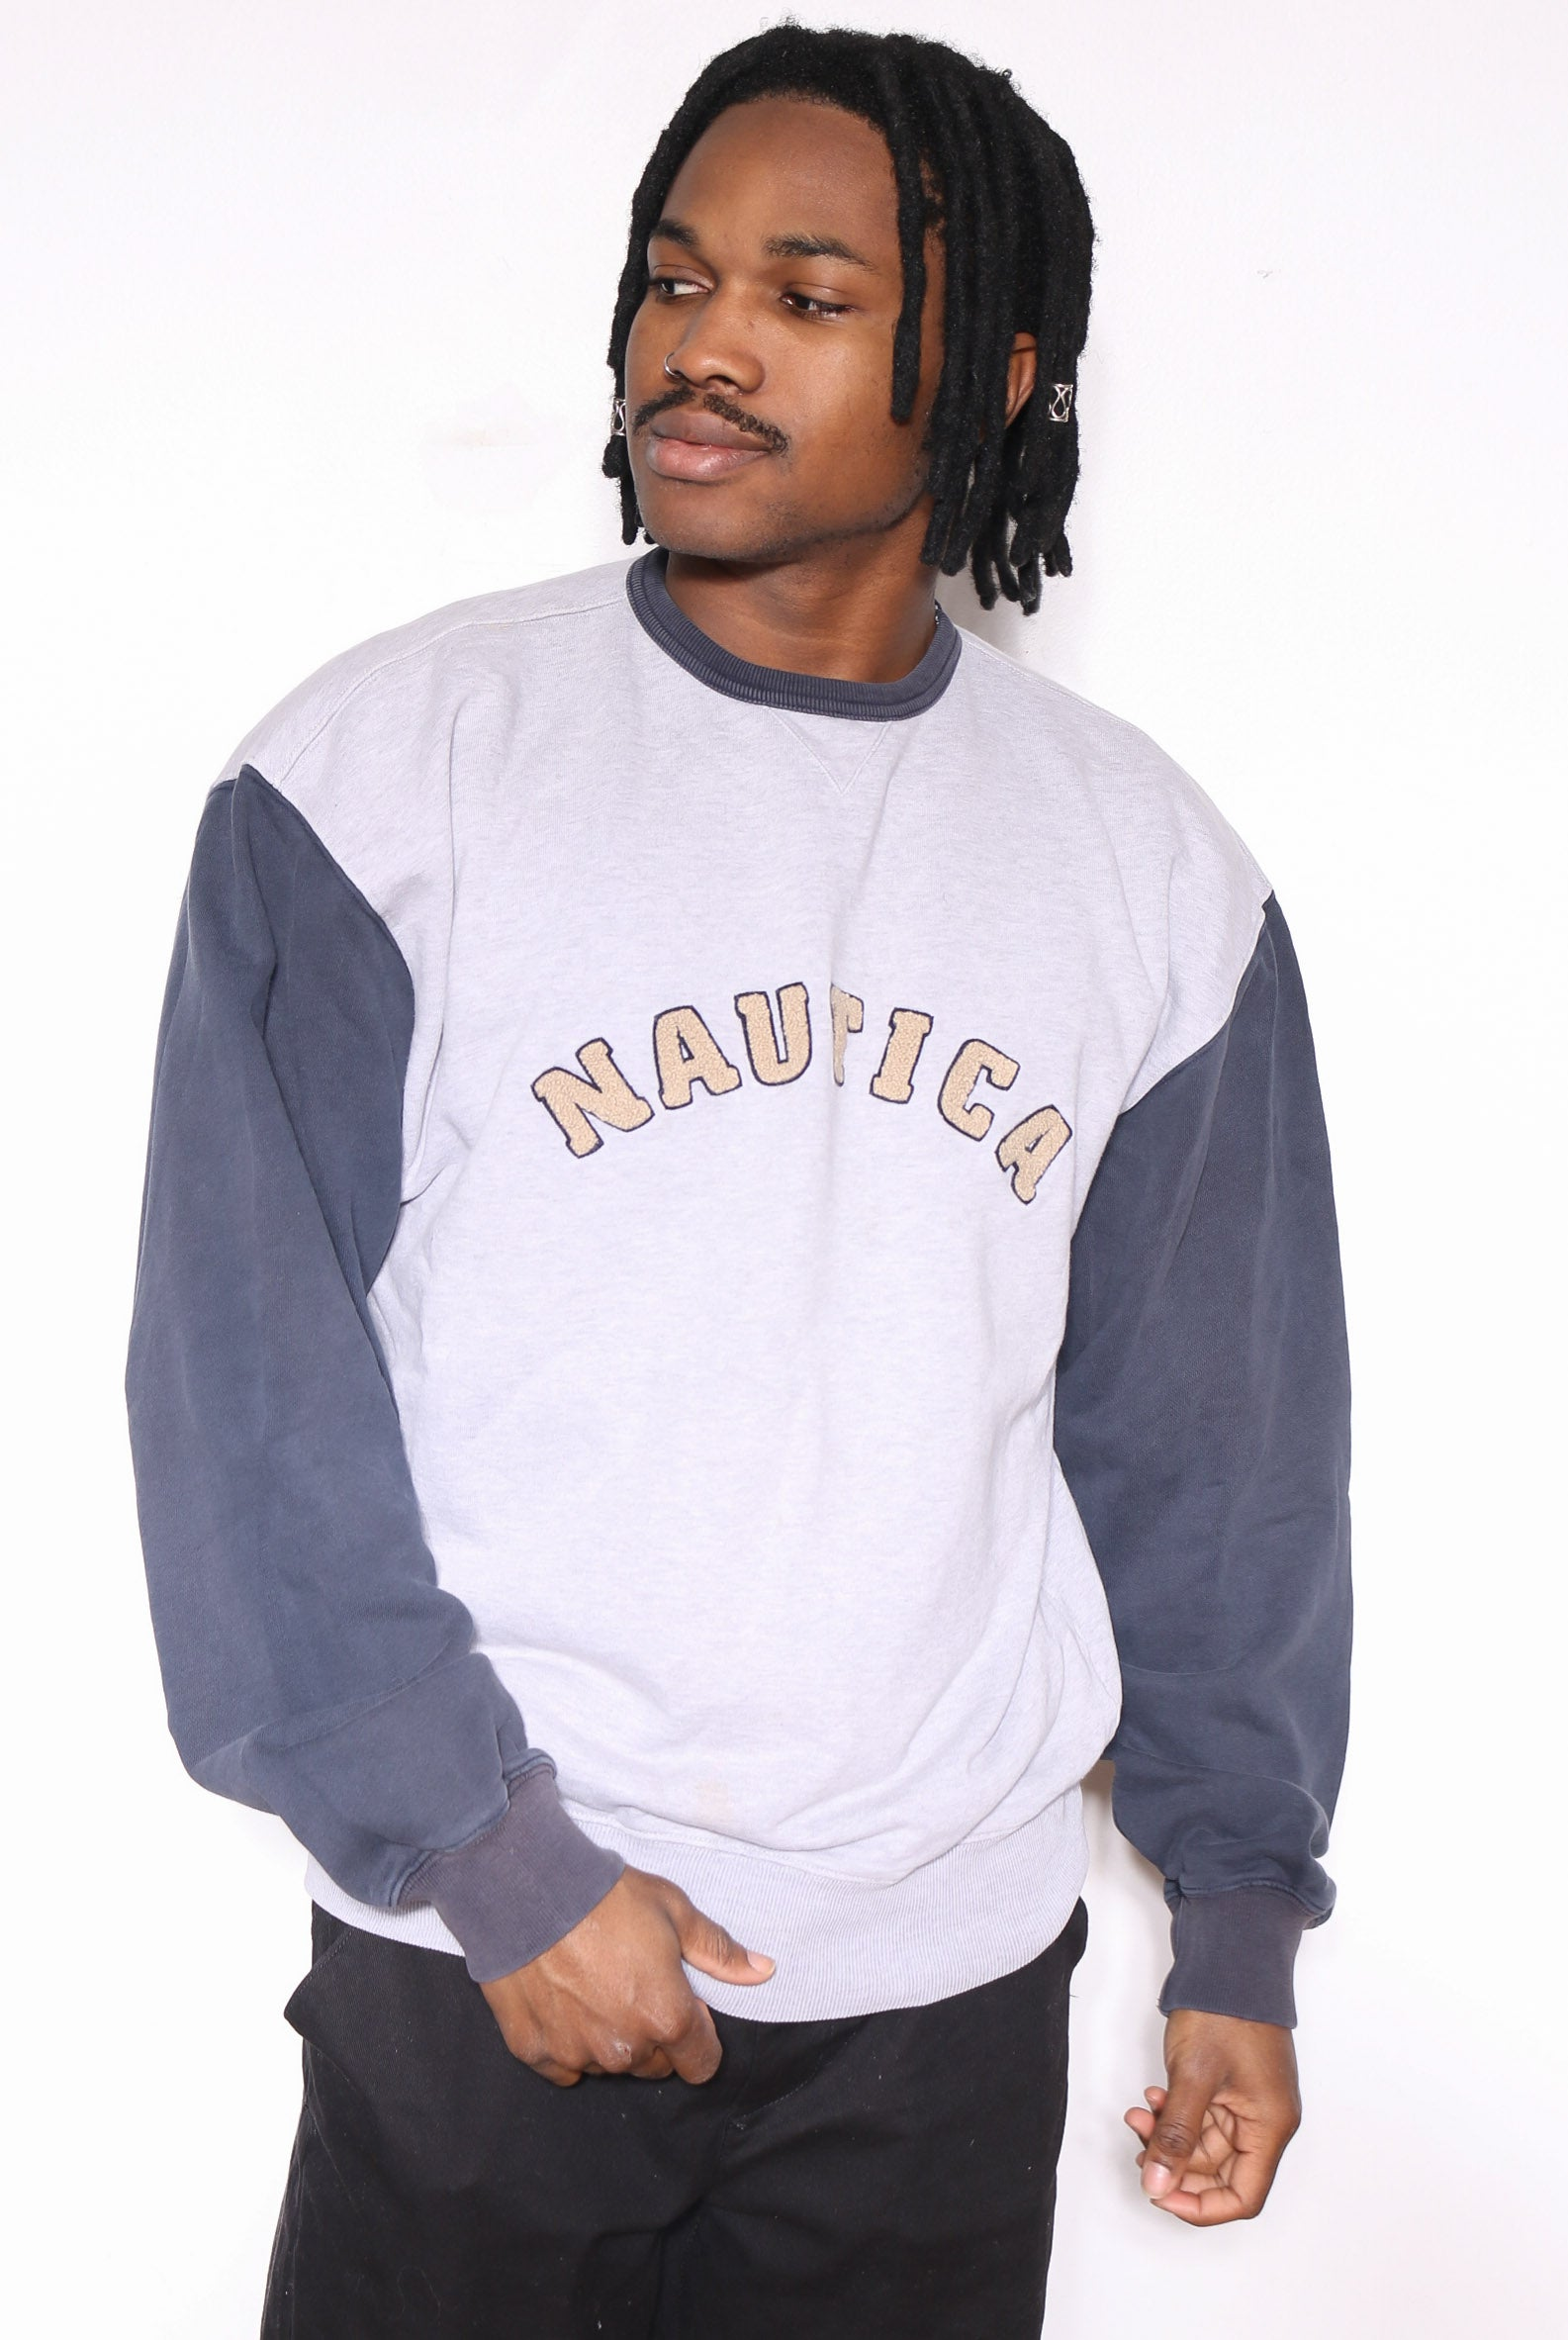 5dcb6fc6f4a5b9 Polo Ralph Lauren Classic Fit Pocket Long Sleeve Tee (S) – Vintage  Marketplace